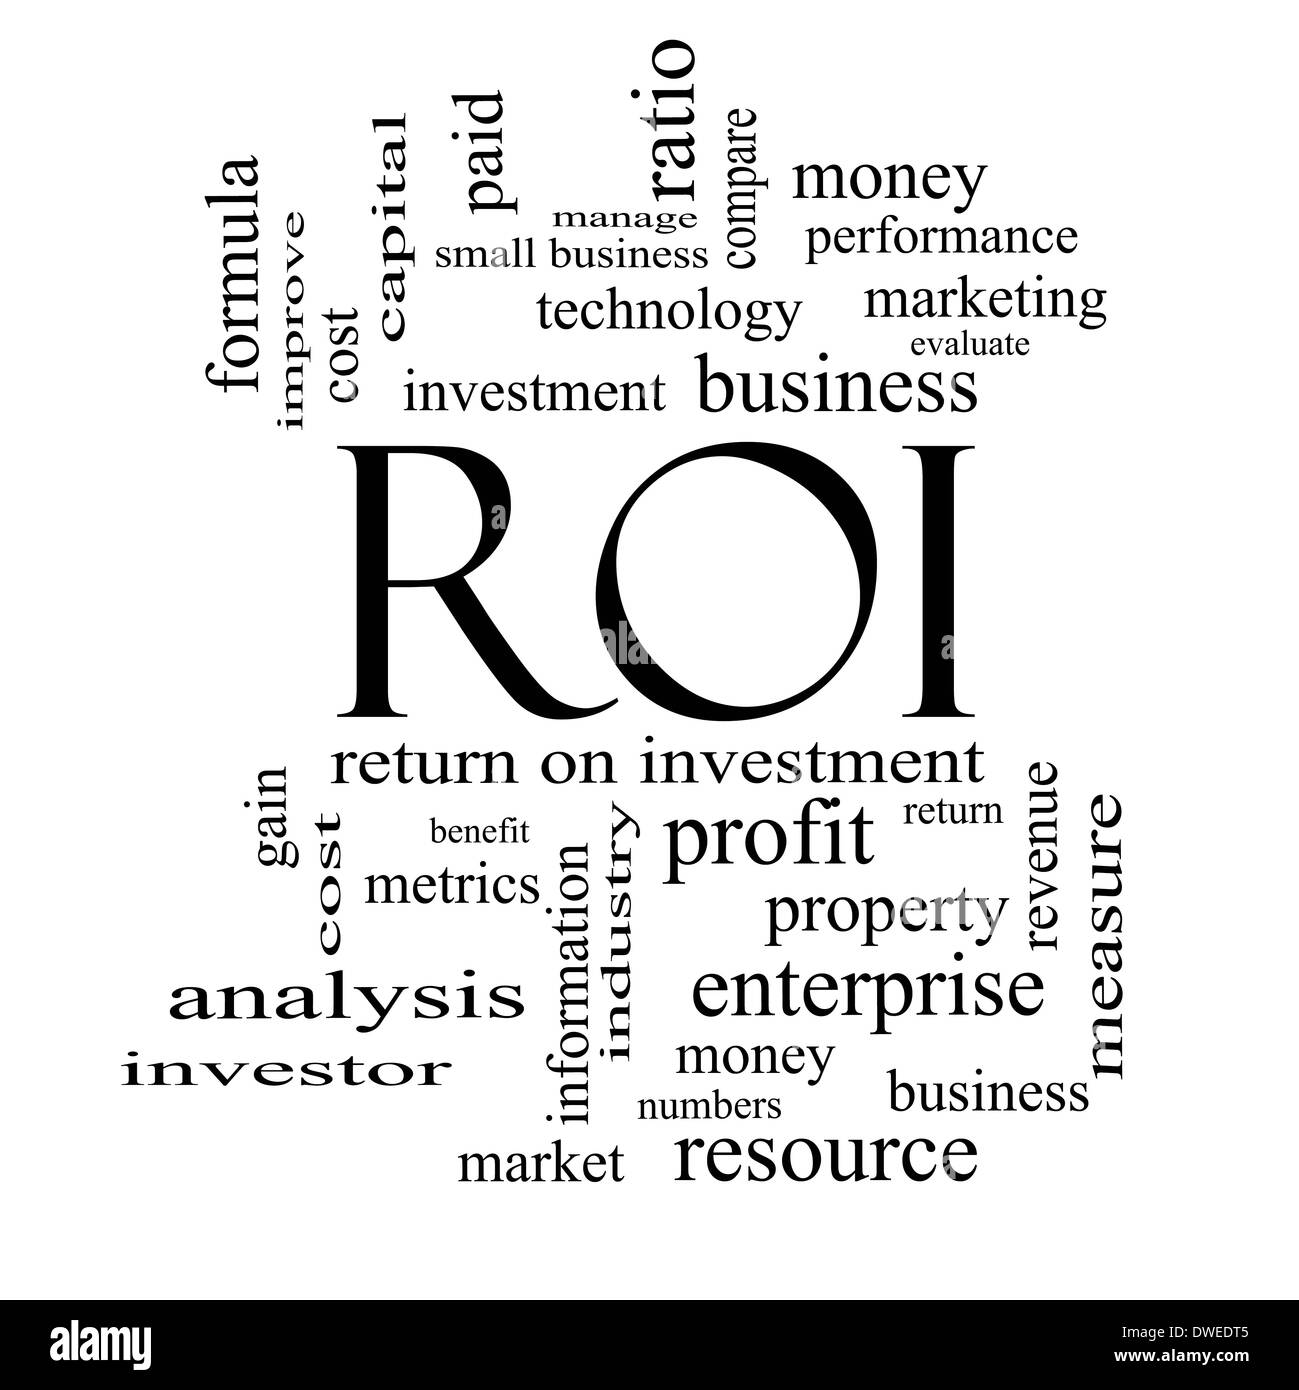 Roi Return Investment Black and White Stock Photos & Images